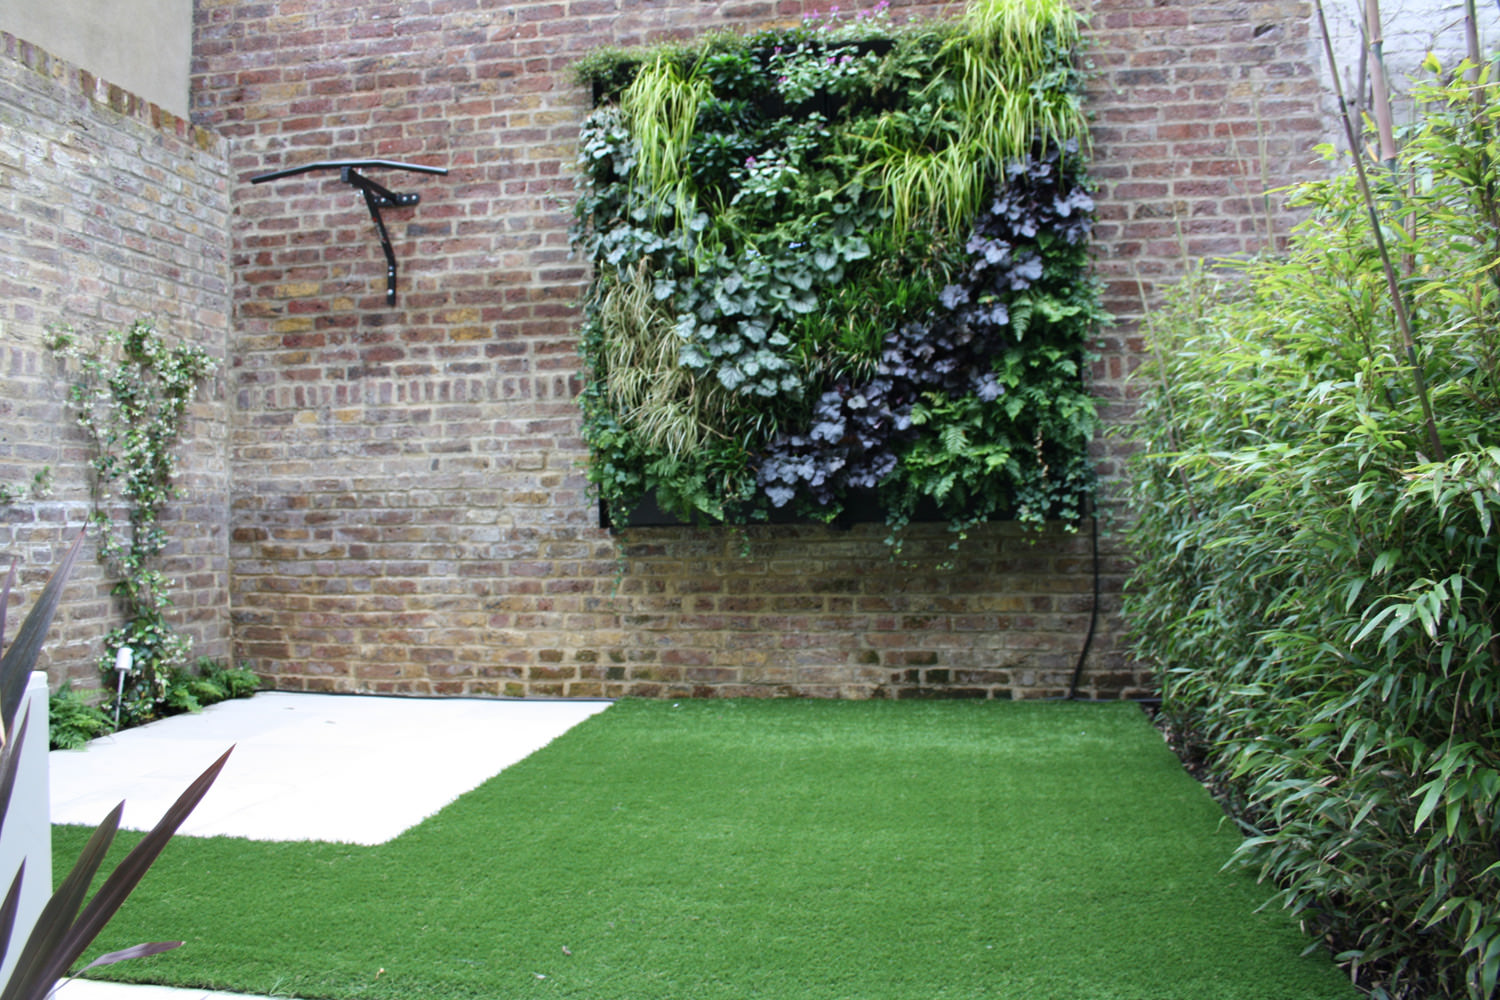 Top 10 london garden designs garden club london for A small garden